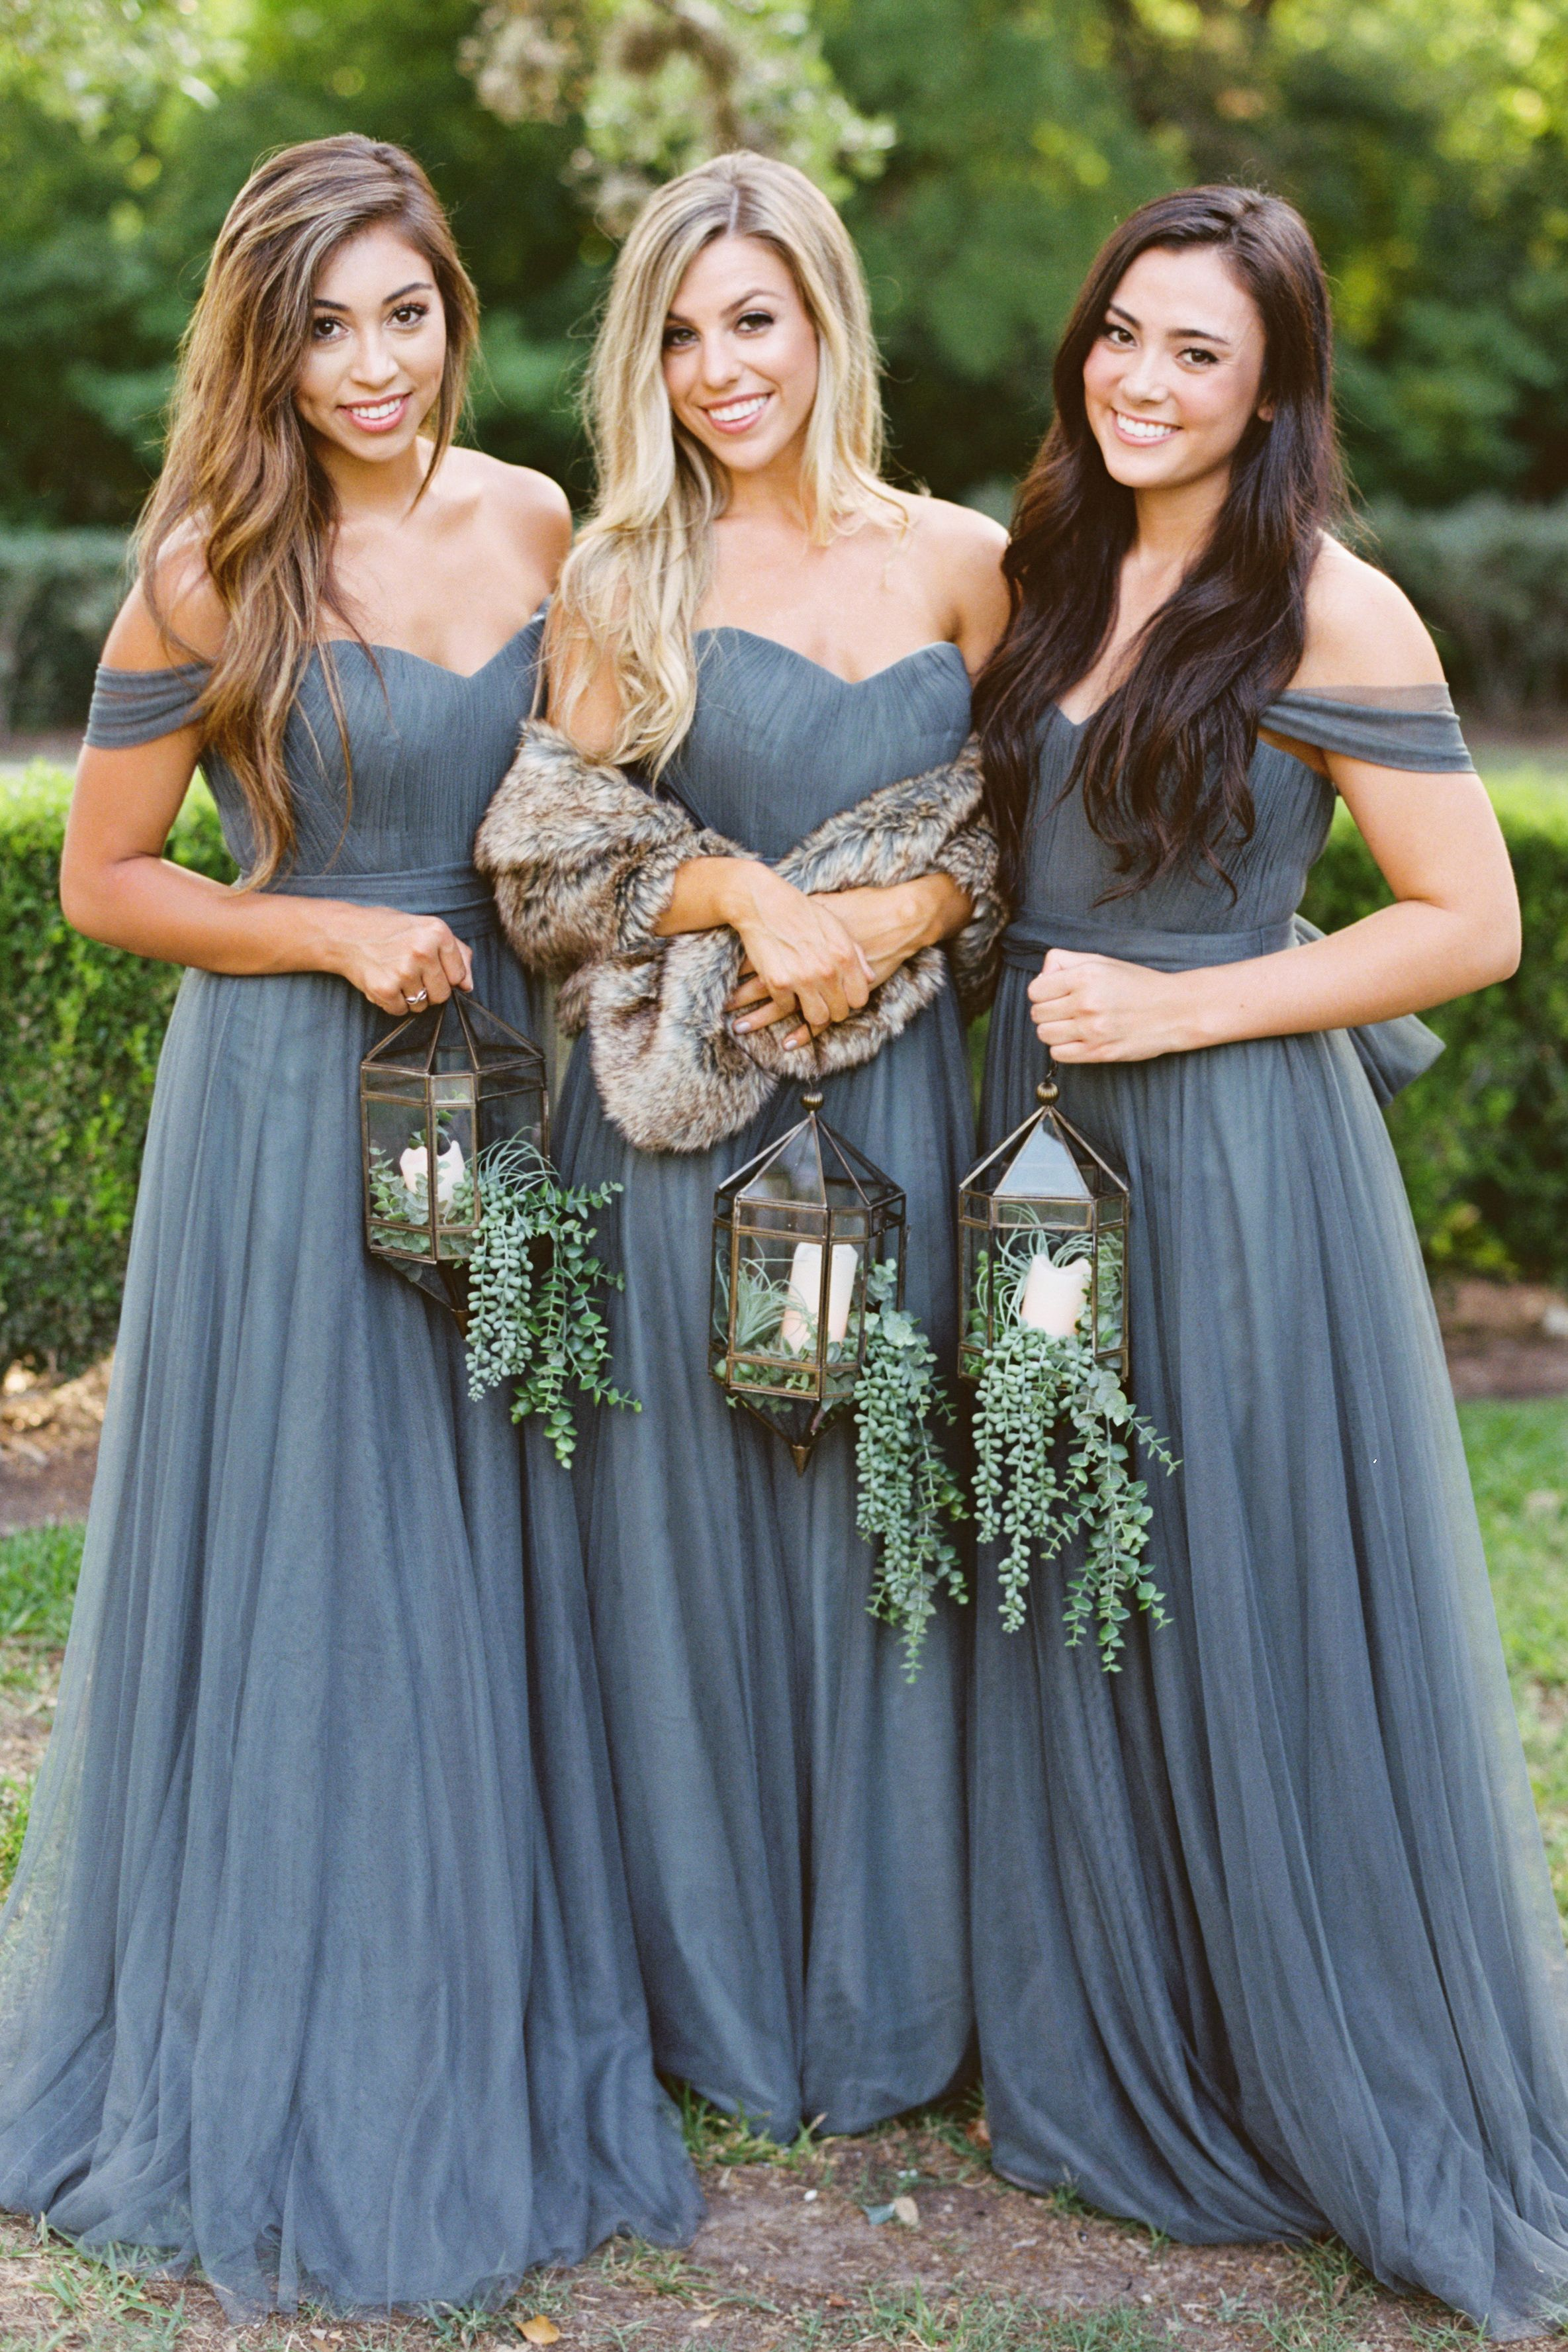 Bridesmaid Dresses And Separates From The Leading Ecommerce Bridesmaid Dress Co Tulle Bridesmaid Dress Mismatched Bridesmaid Dresses Wedding Bridesmaid Dresses